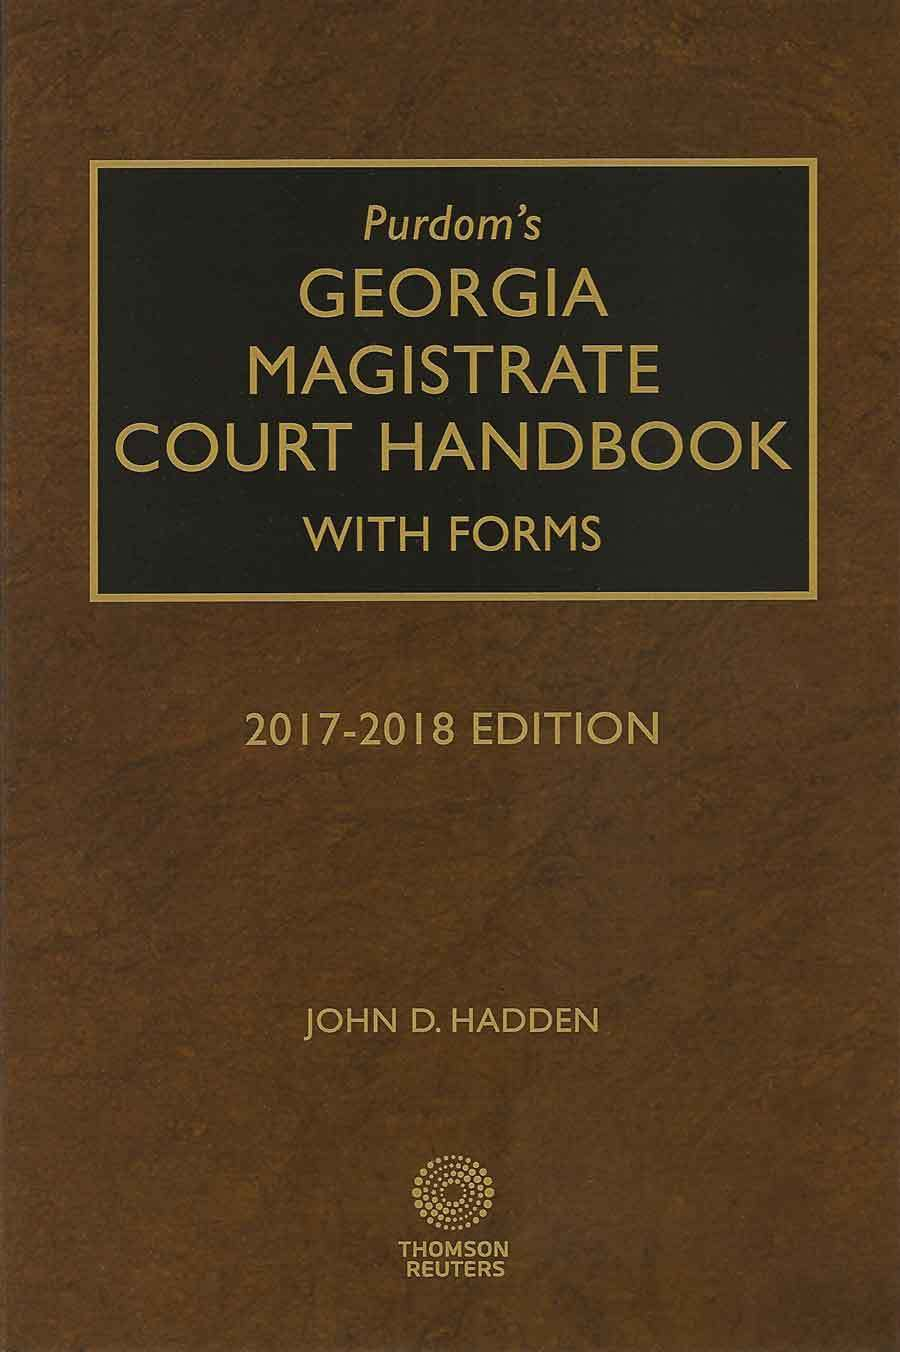 Cover of 2017-2018 edition of Georgia Magistrate Court Handbook by John Hadden